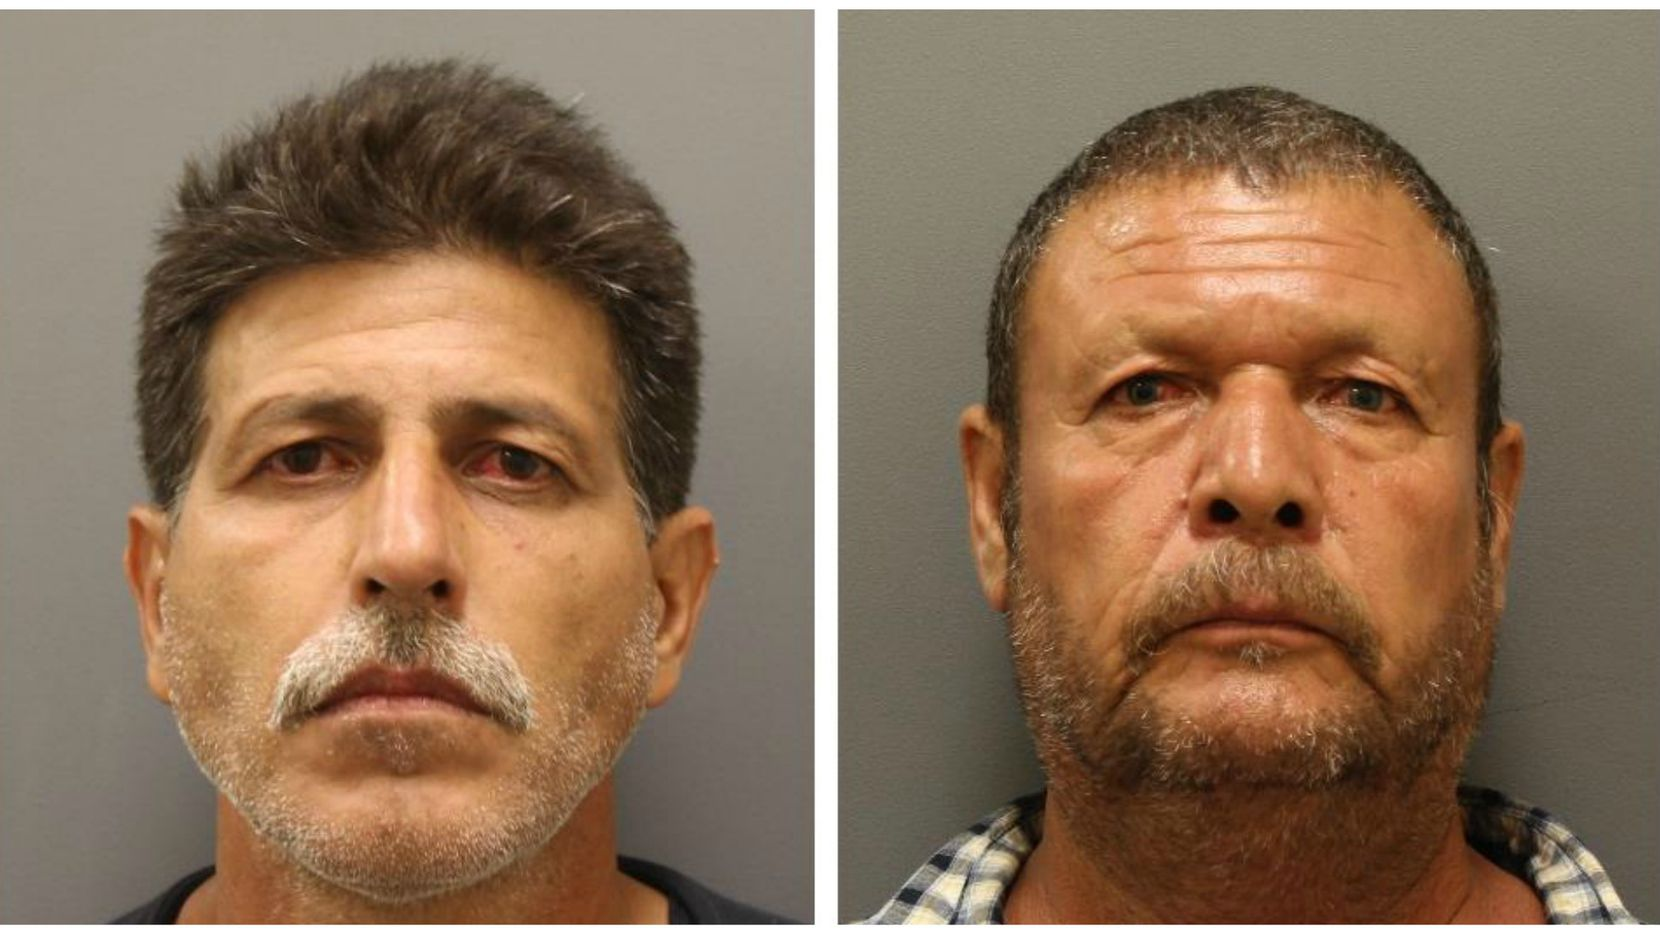 Jose Garcia, left, and Jose Barazza, 55, were arrested in connection with the incident Saturday.